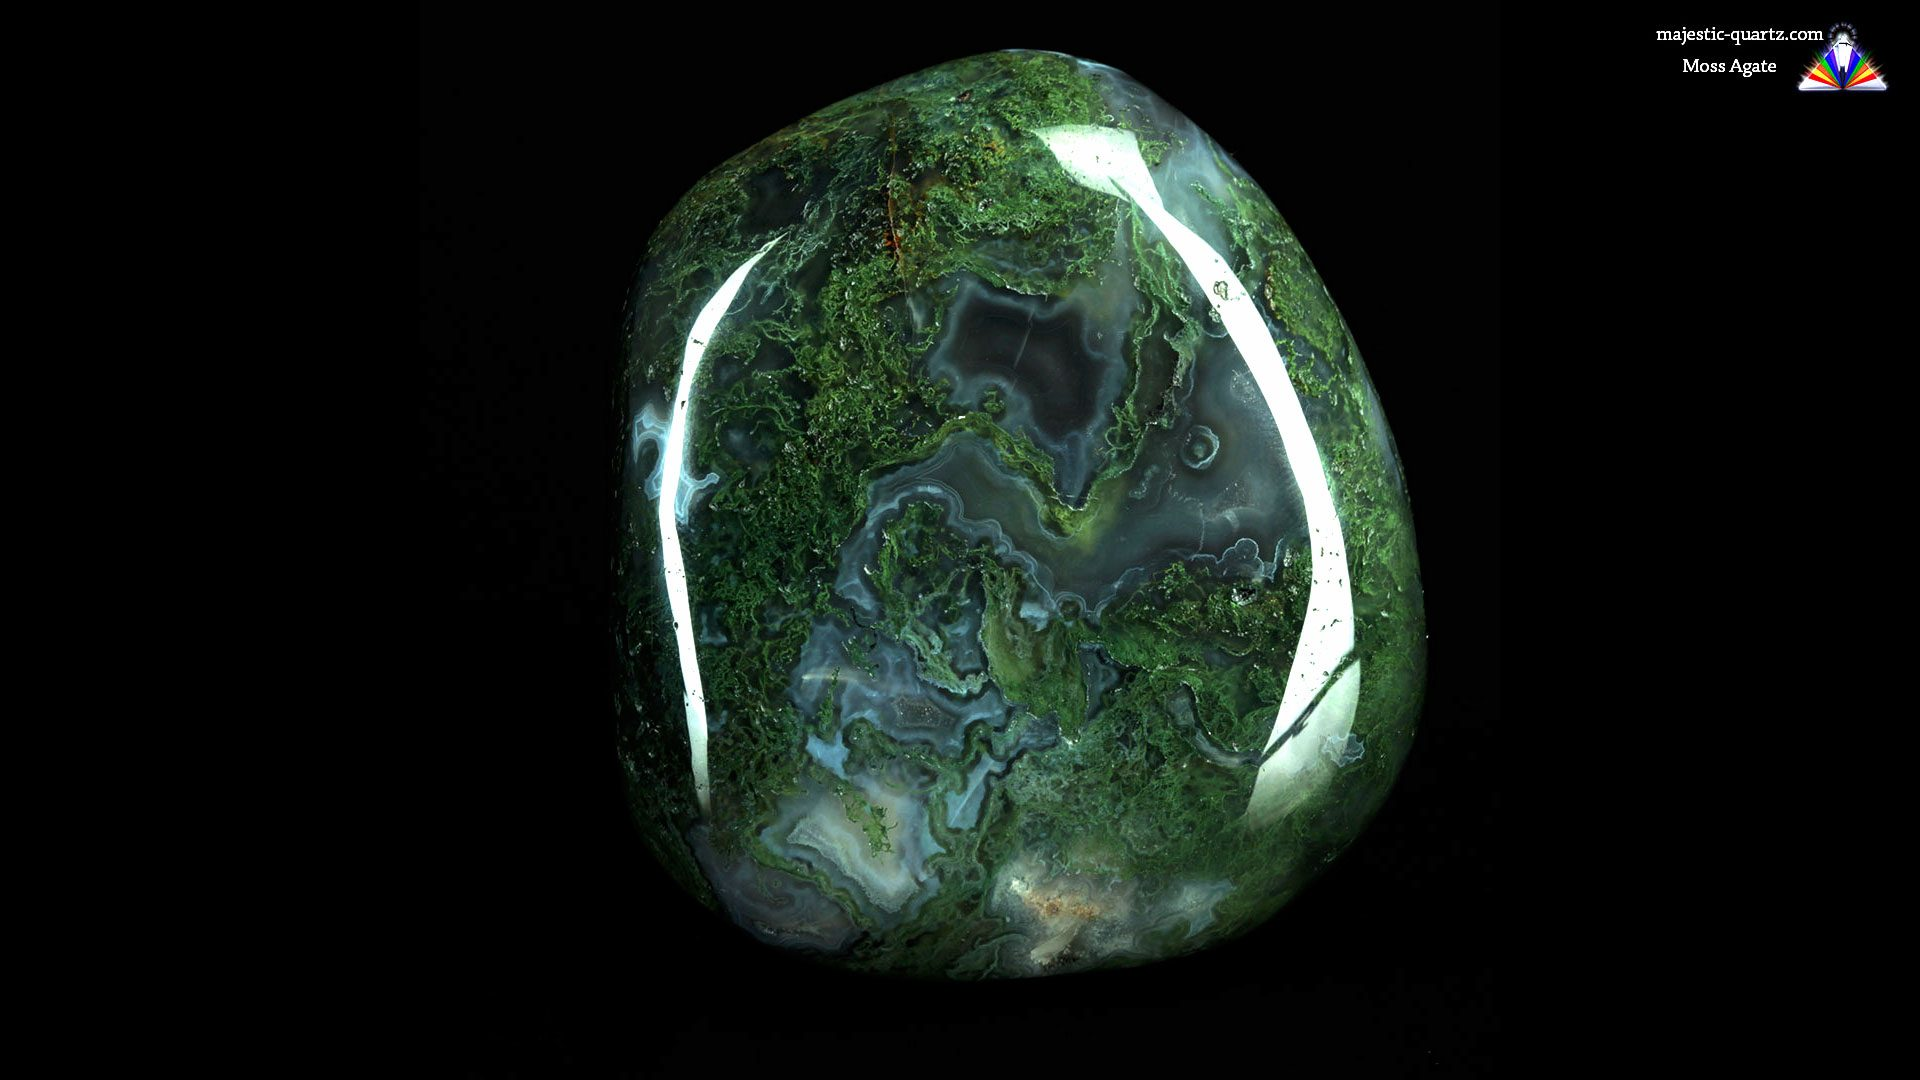 Moss Agate - Photograph by Anthony Bradford